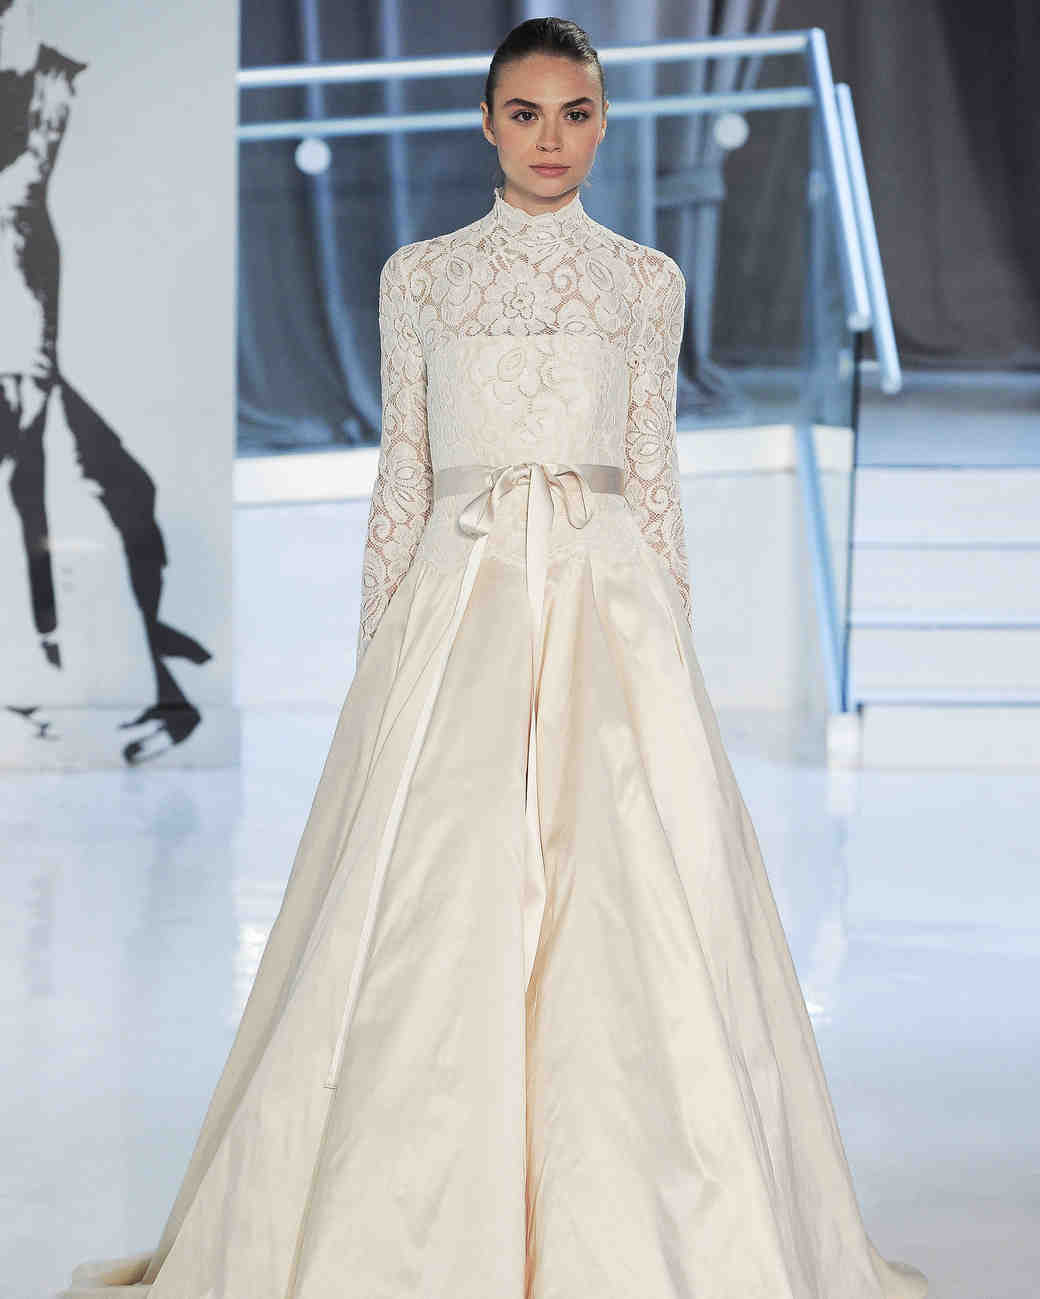 Long Sleeve Wedding Gowns: Long-Sleeve Wedding Dresses We Love